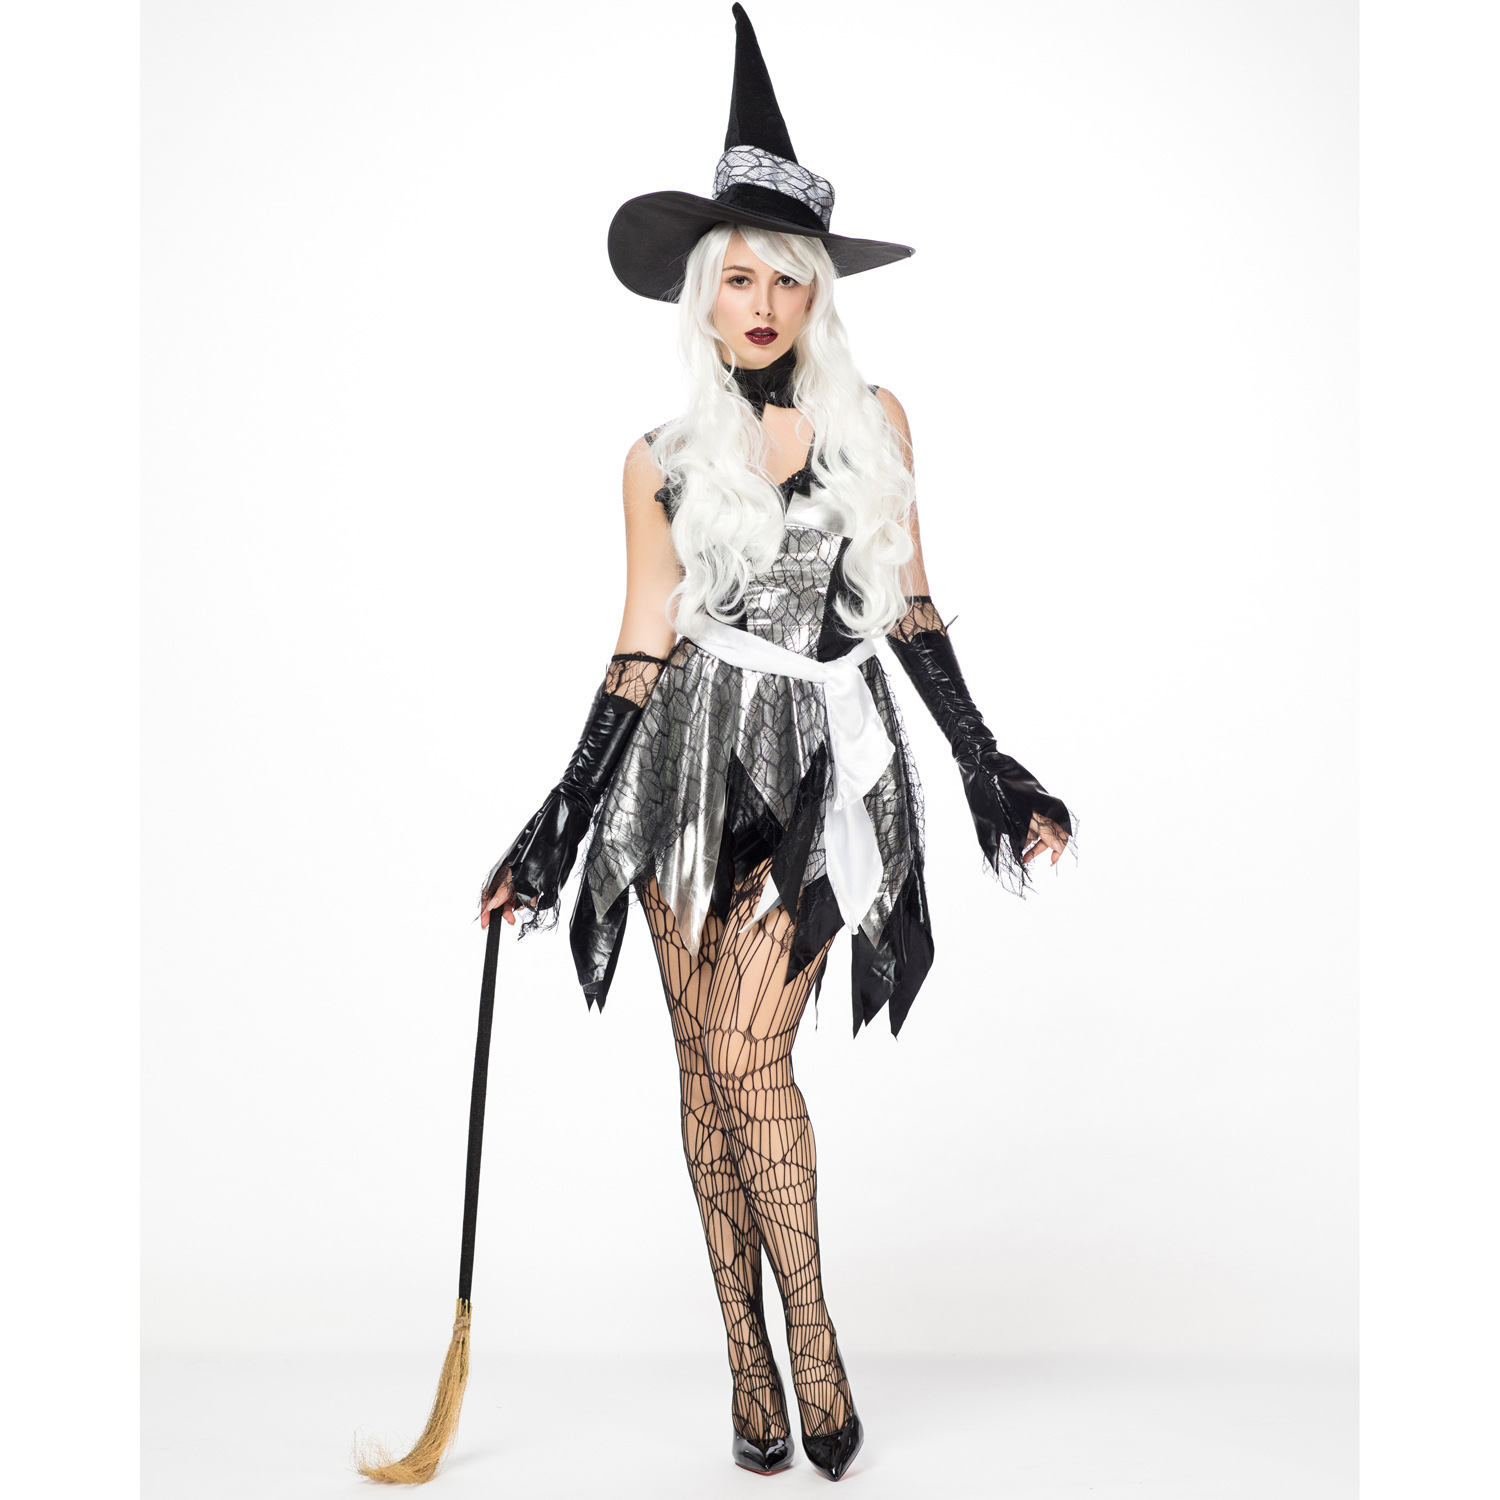 Dancing Stage <font><b>Costumes</b></font> <font><b>Halloween</b></font> <font><b>Sexy</b></font> Witch <font><b>Costume</b></font> Cosplay Role-playing Anime Witch Suit Sportswear image